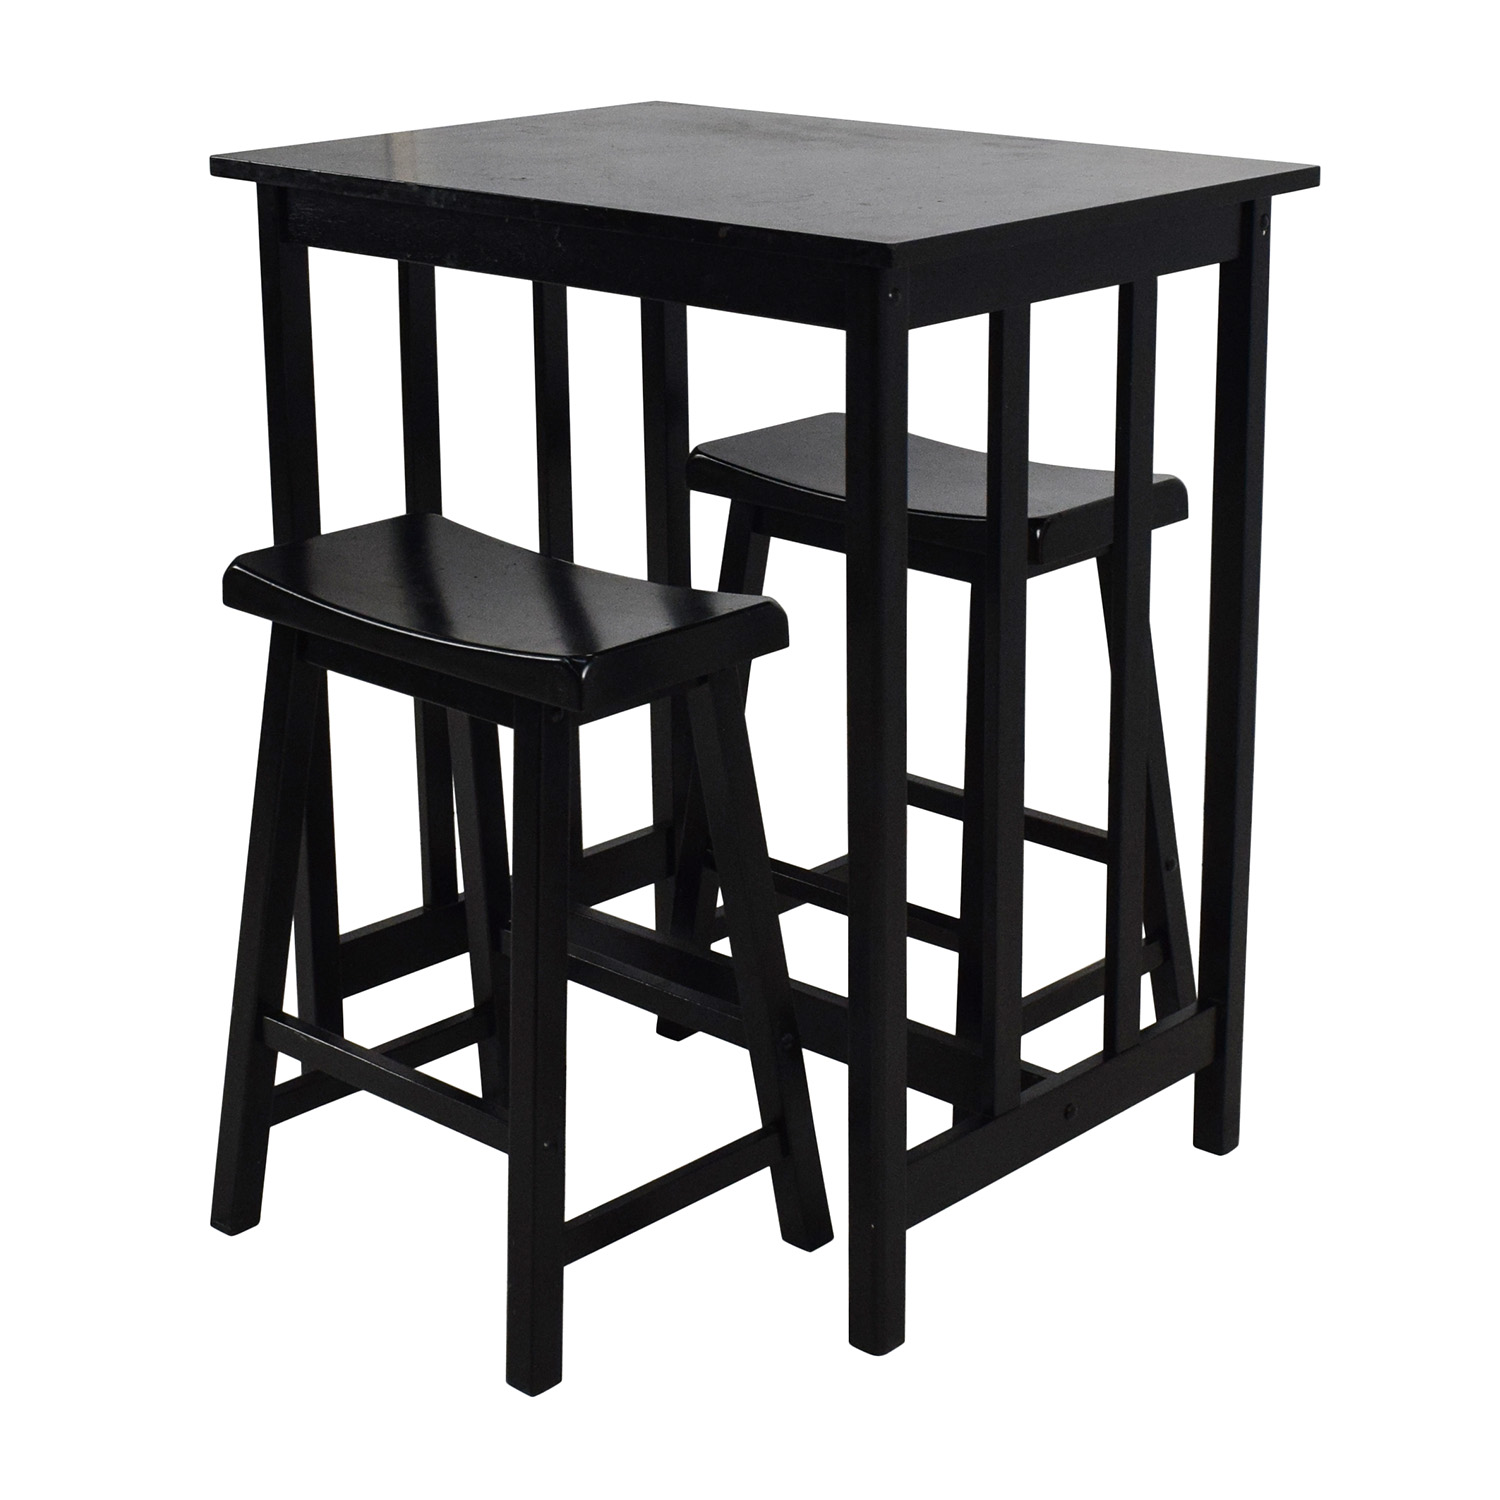 Fabulous 66 Off Tall Kitchen Table Set Tables Download Free Architecture Designs Embacsunscenecom